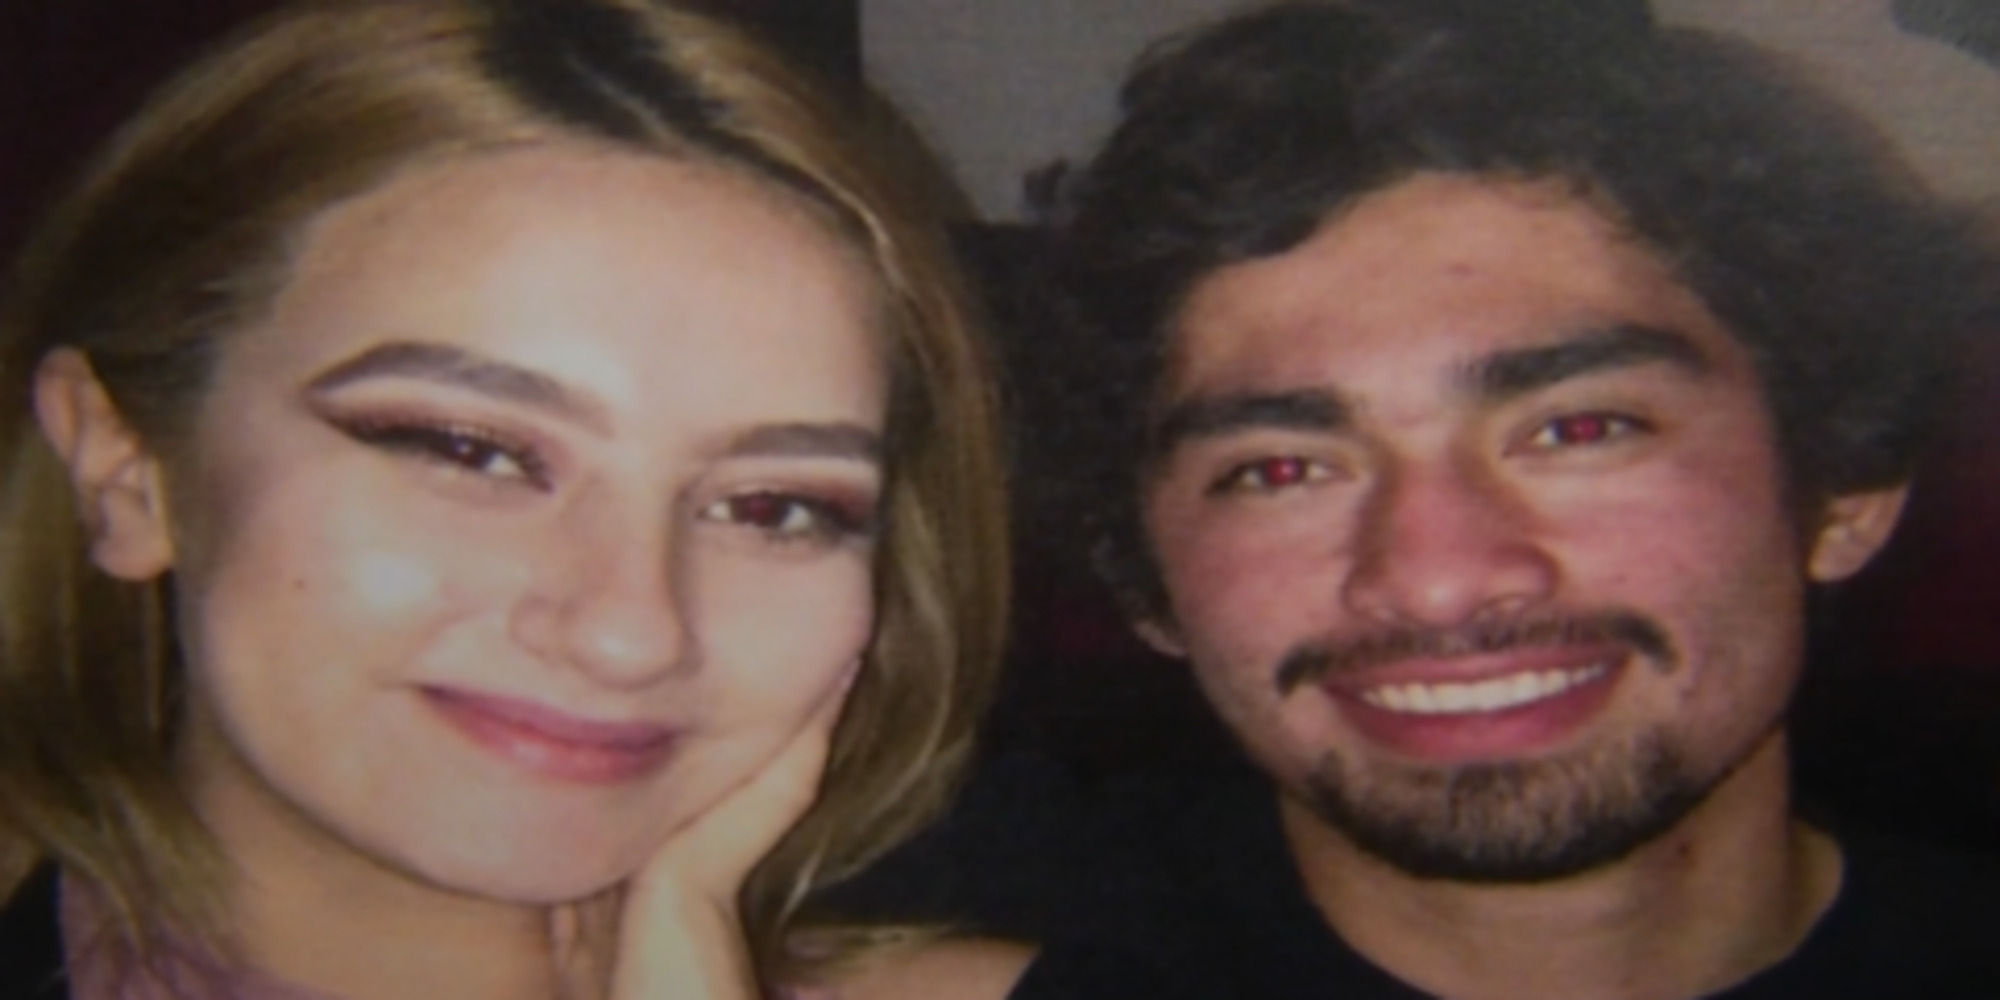 North Hollywood couple goes missing after planned trip to Big Sur